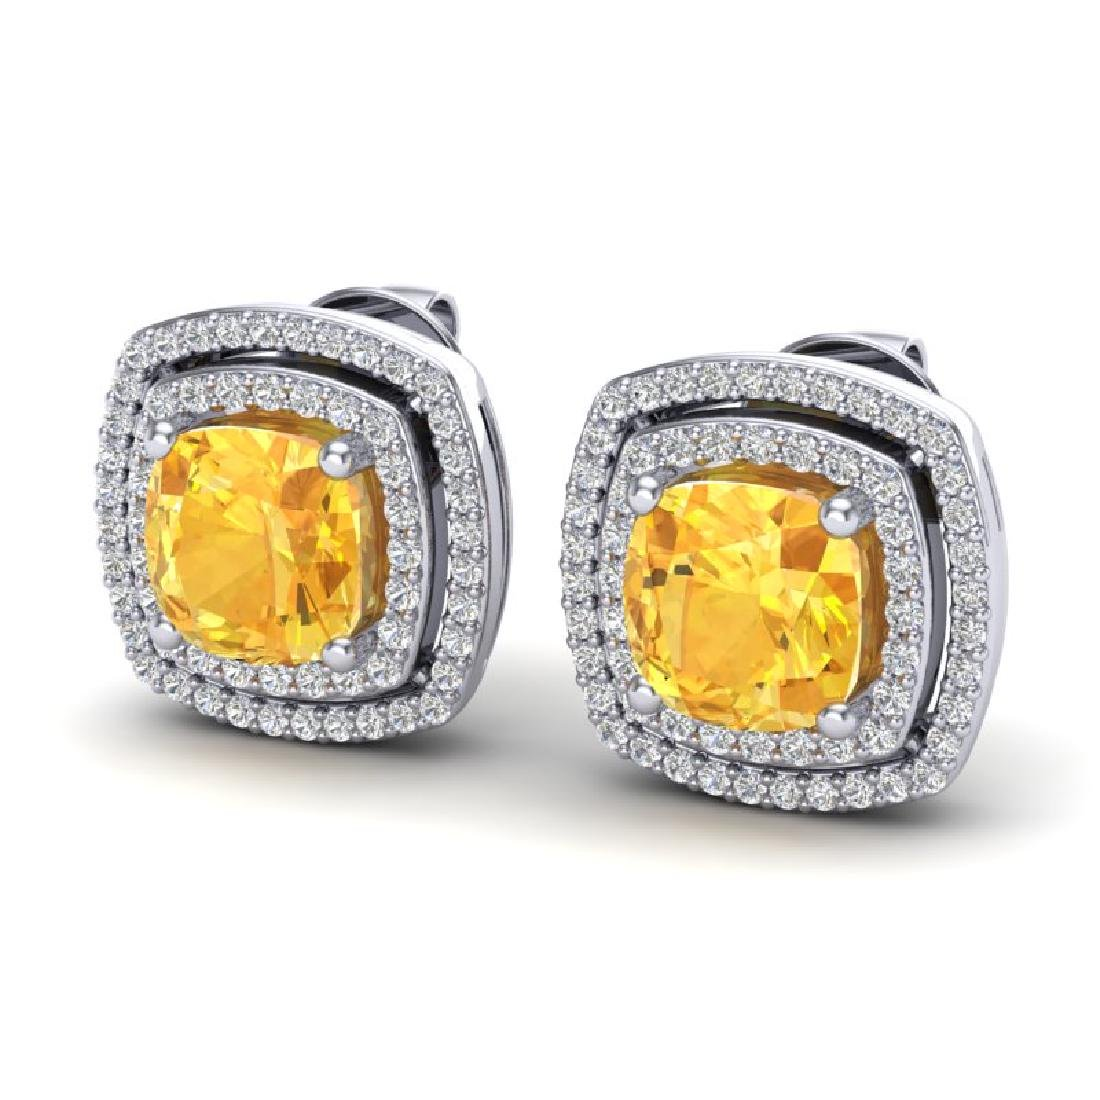 3.55 CTW Citrine And Micro Pave VS/SI Diamond Halo